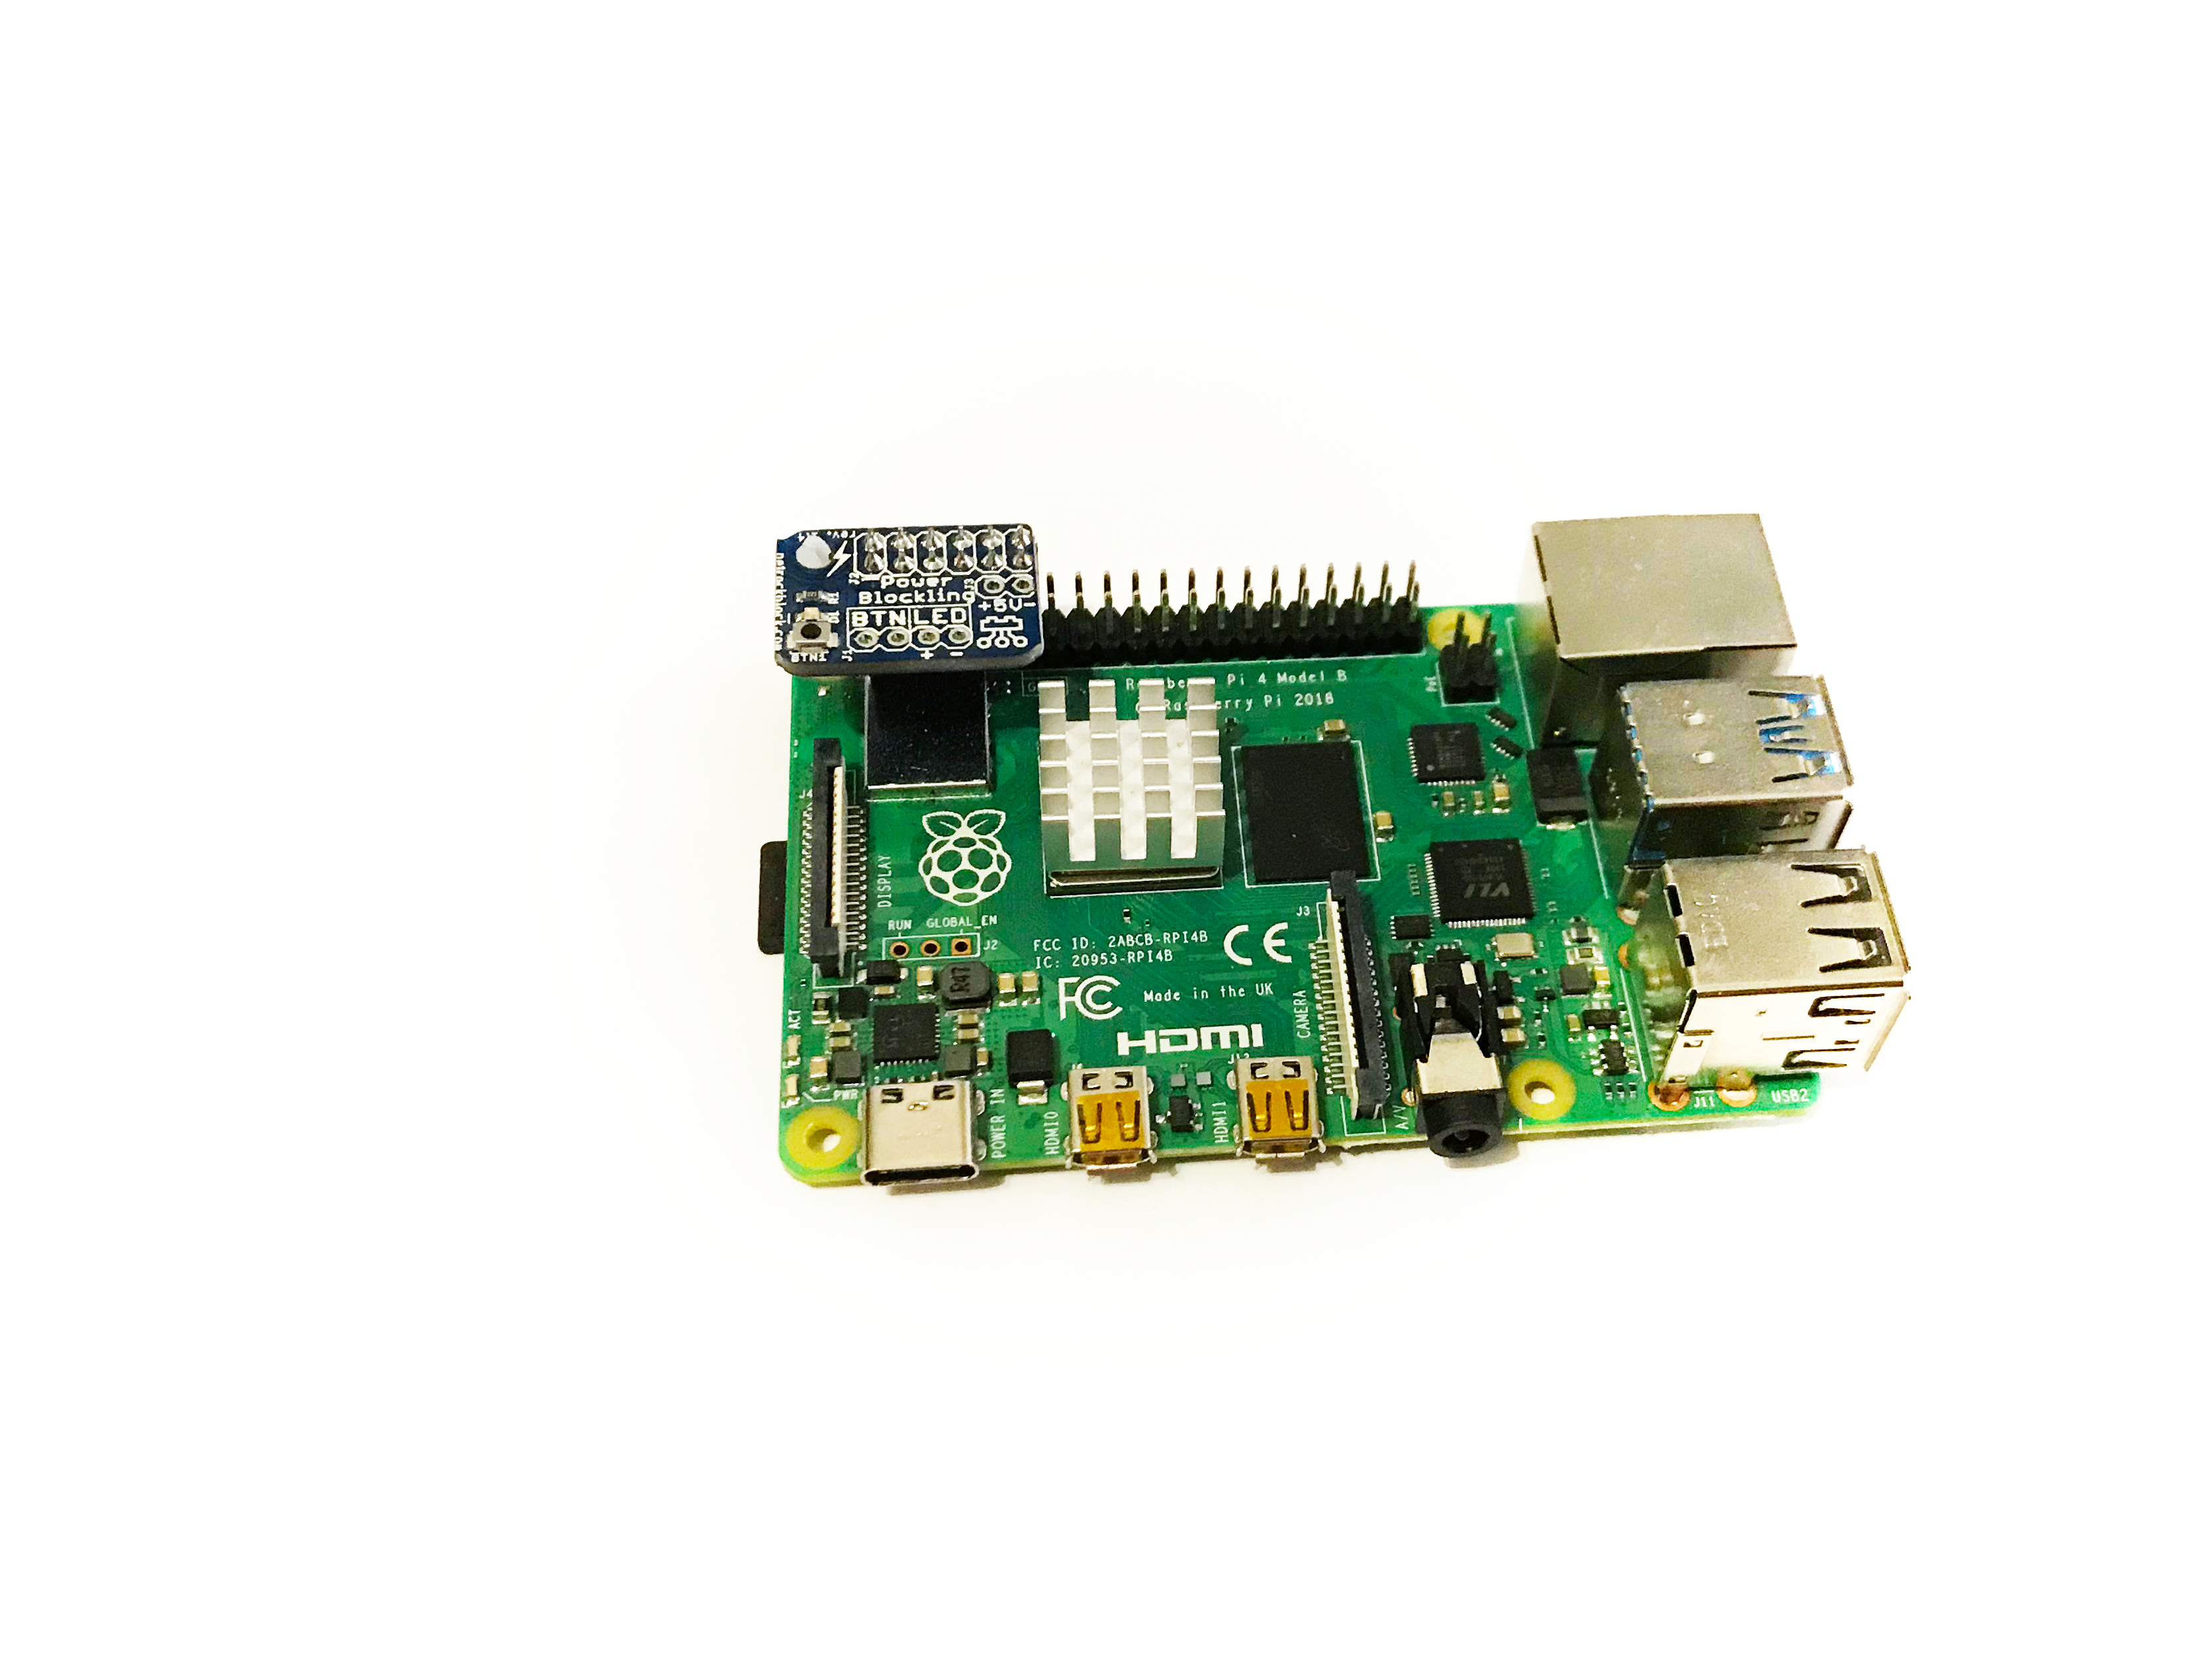 PowerBlockling attached to Raspberry Pi